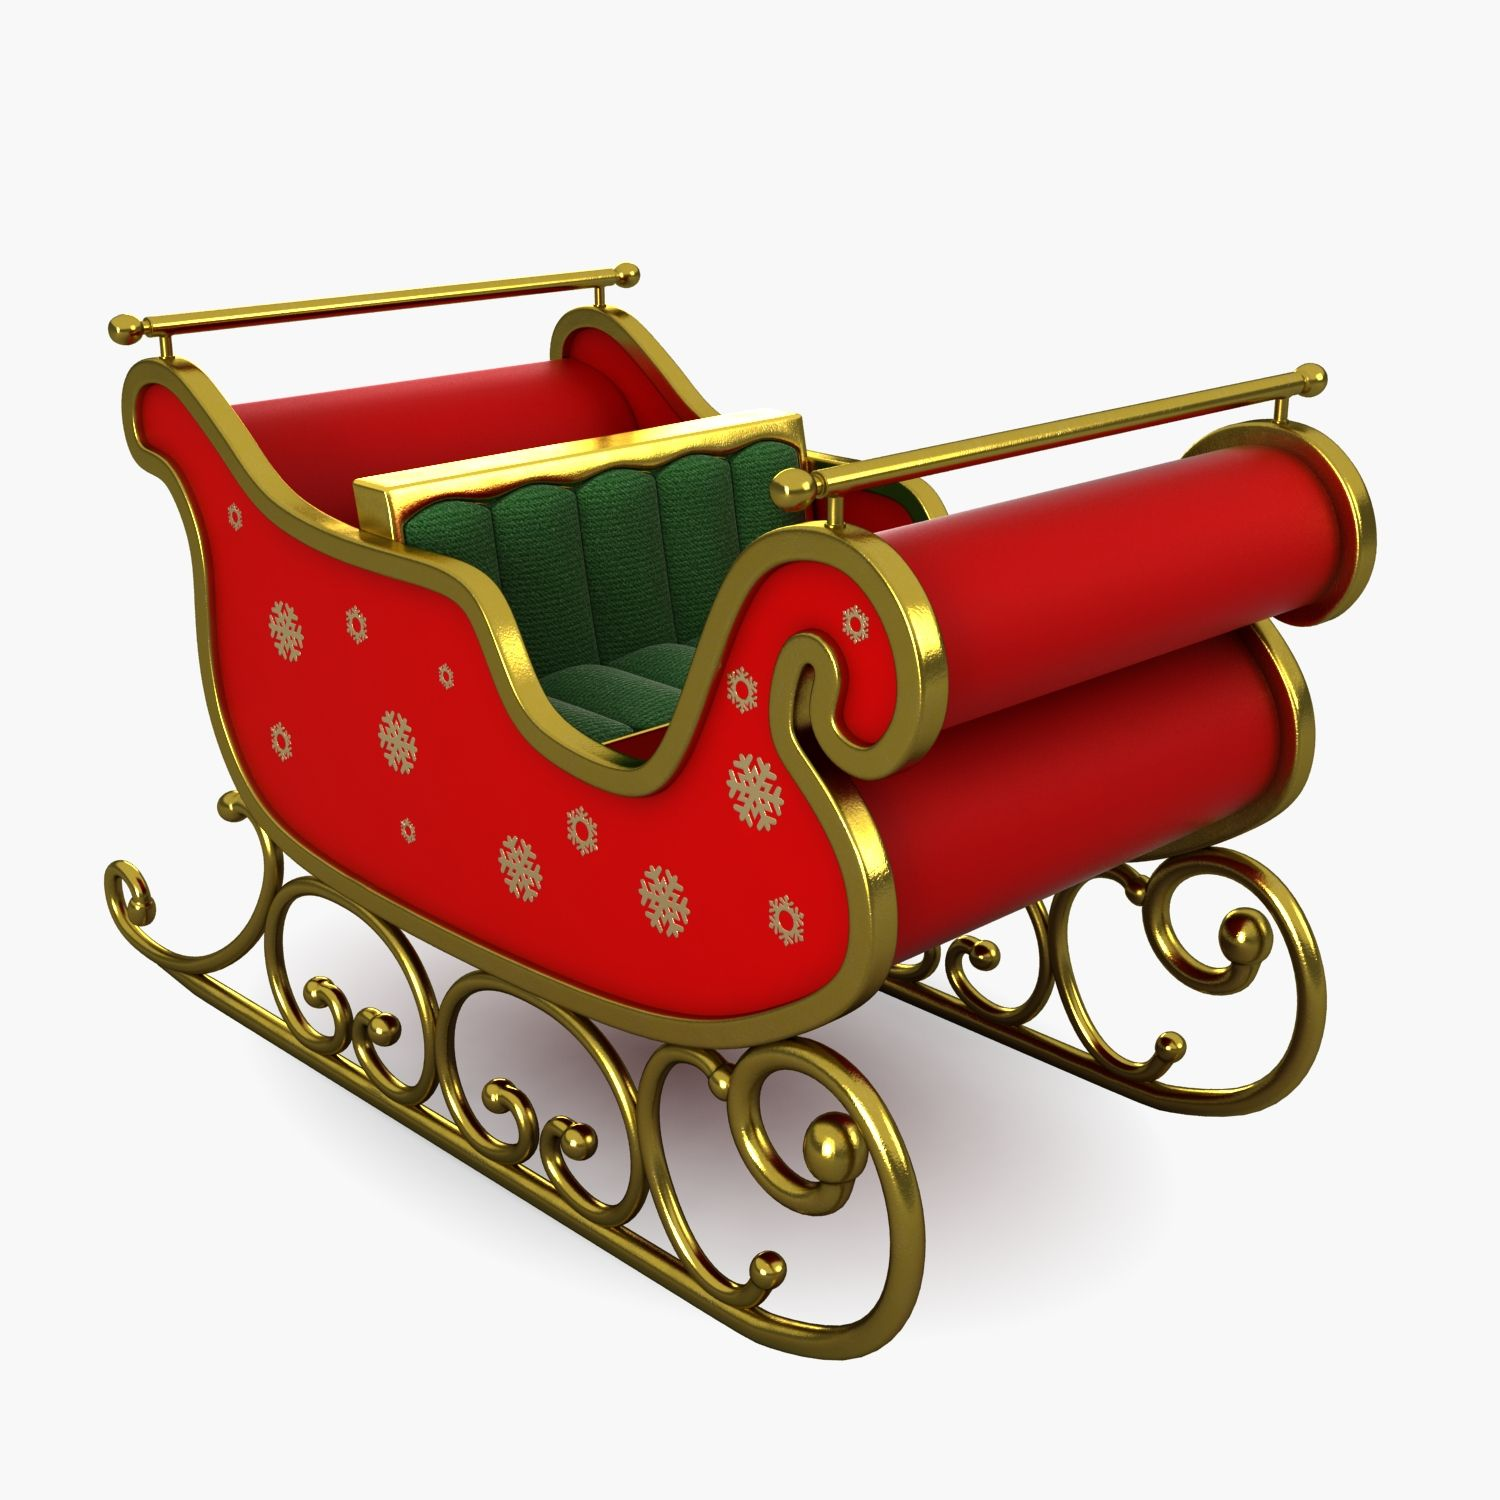 3d Model Sleigh Flying Magic Reindeer Santa Deer Sled Vehicle Snow Christmas Xmas Cartoon C Christmas Sleigh Christmas Sled Miniature Christmas